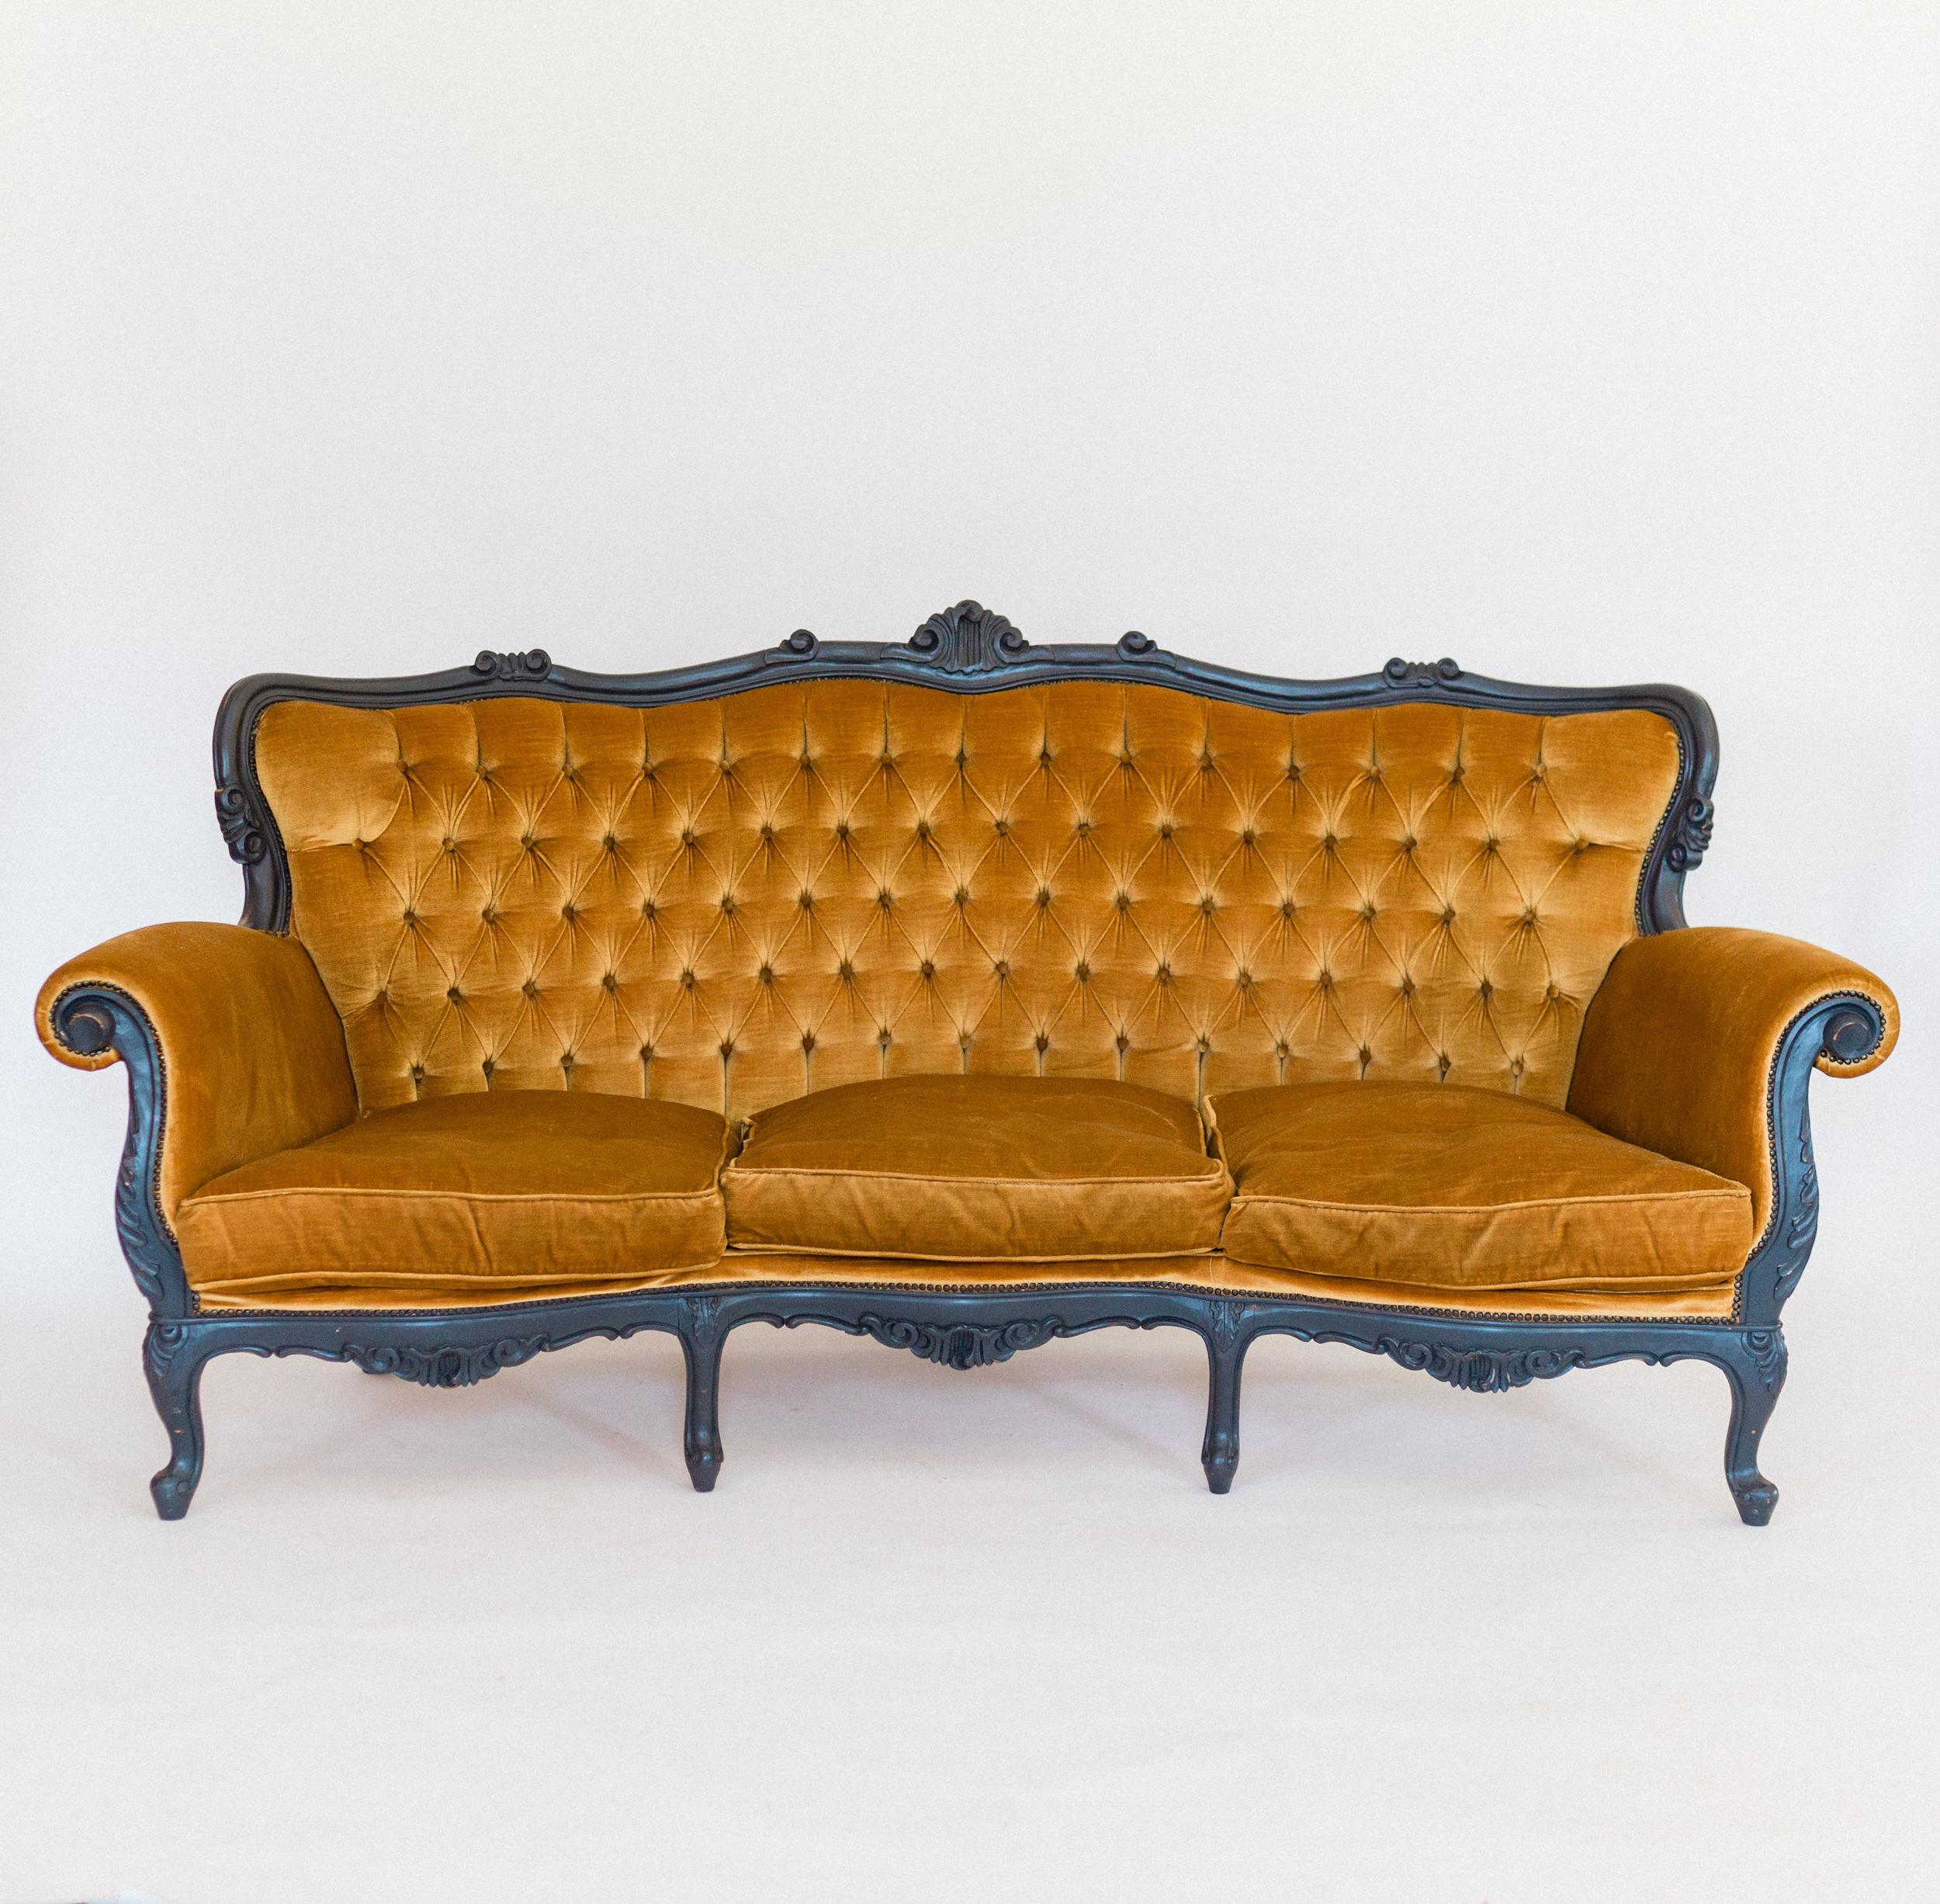 Most Popular Callie Sofa Chairs Regarding Callie Sofa — Greenhouse Picker Sisters (View 6 of 20)